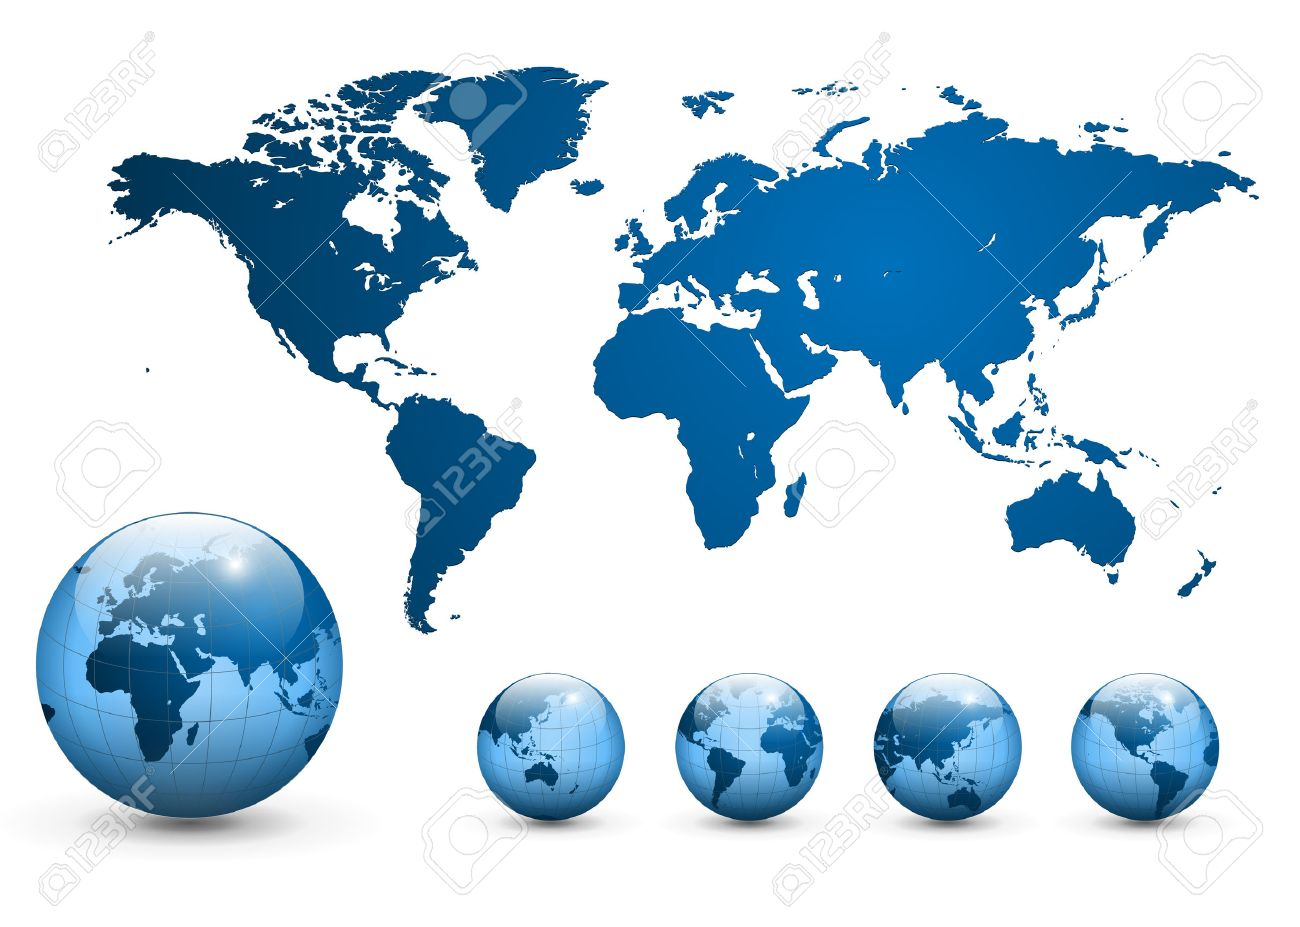 Map Of The World And Earth Globe Royalty Free Cliparts Vectors - Globe map of the world